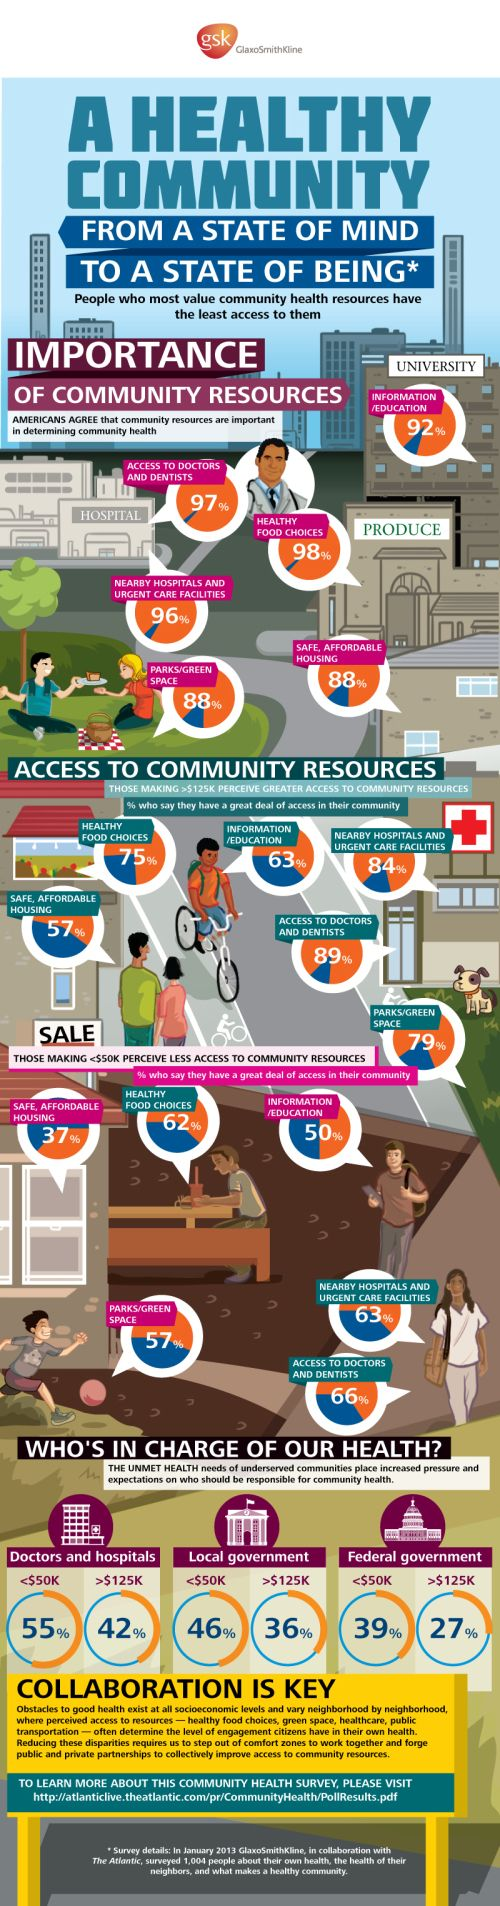 Below is a new infographic from GlaxoSmithKline: @dandunlop A Healthy Community | From a State of Mind to a State of Being.  It's based on a recent National Community Health Survey